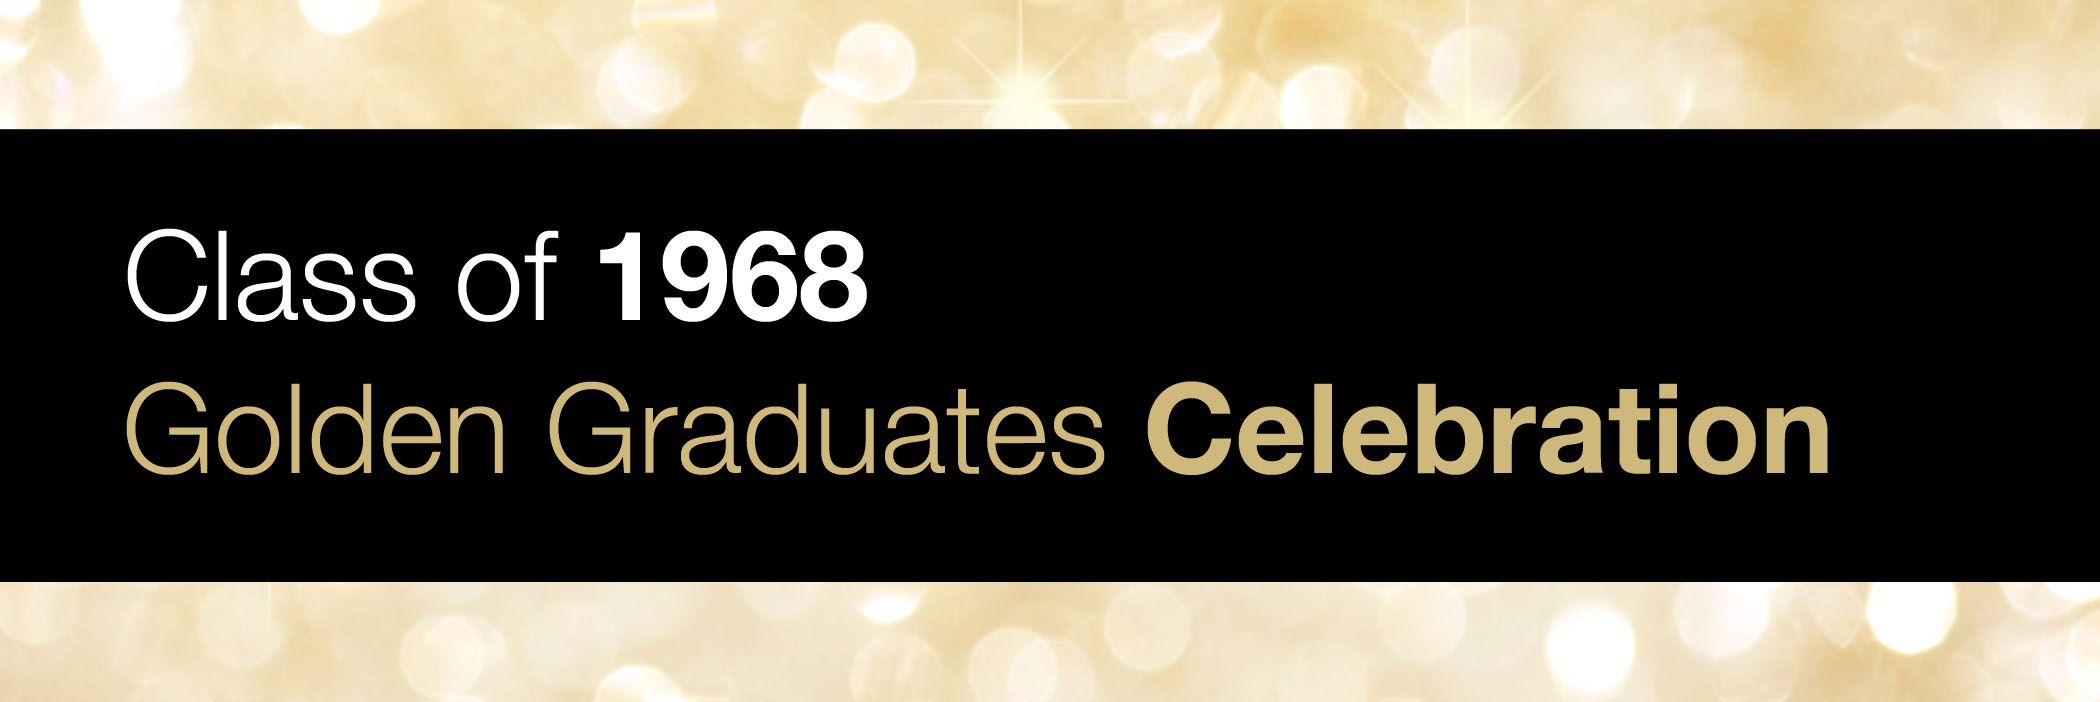 Class of 1968 Golden Graduates Celebration